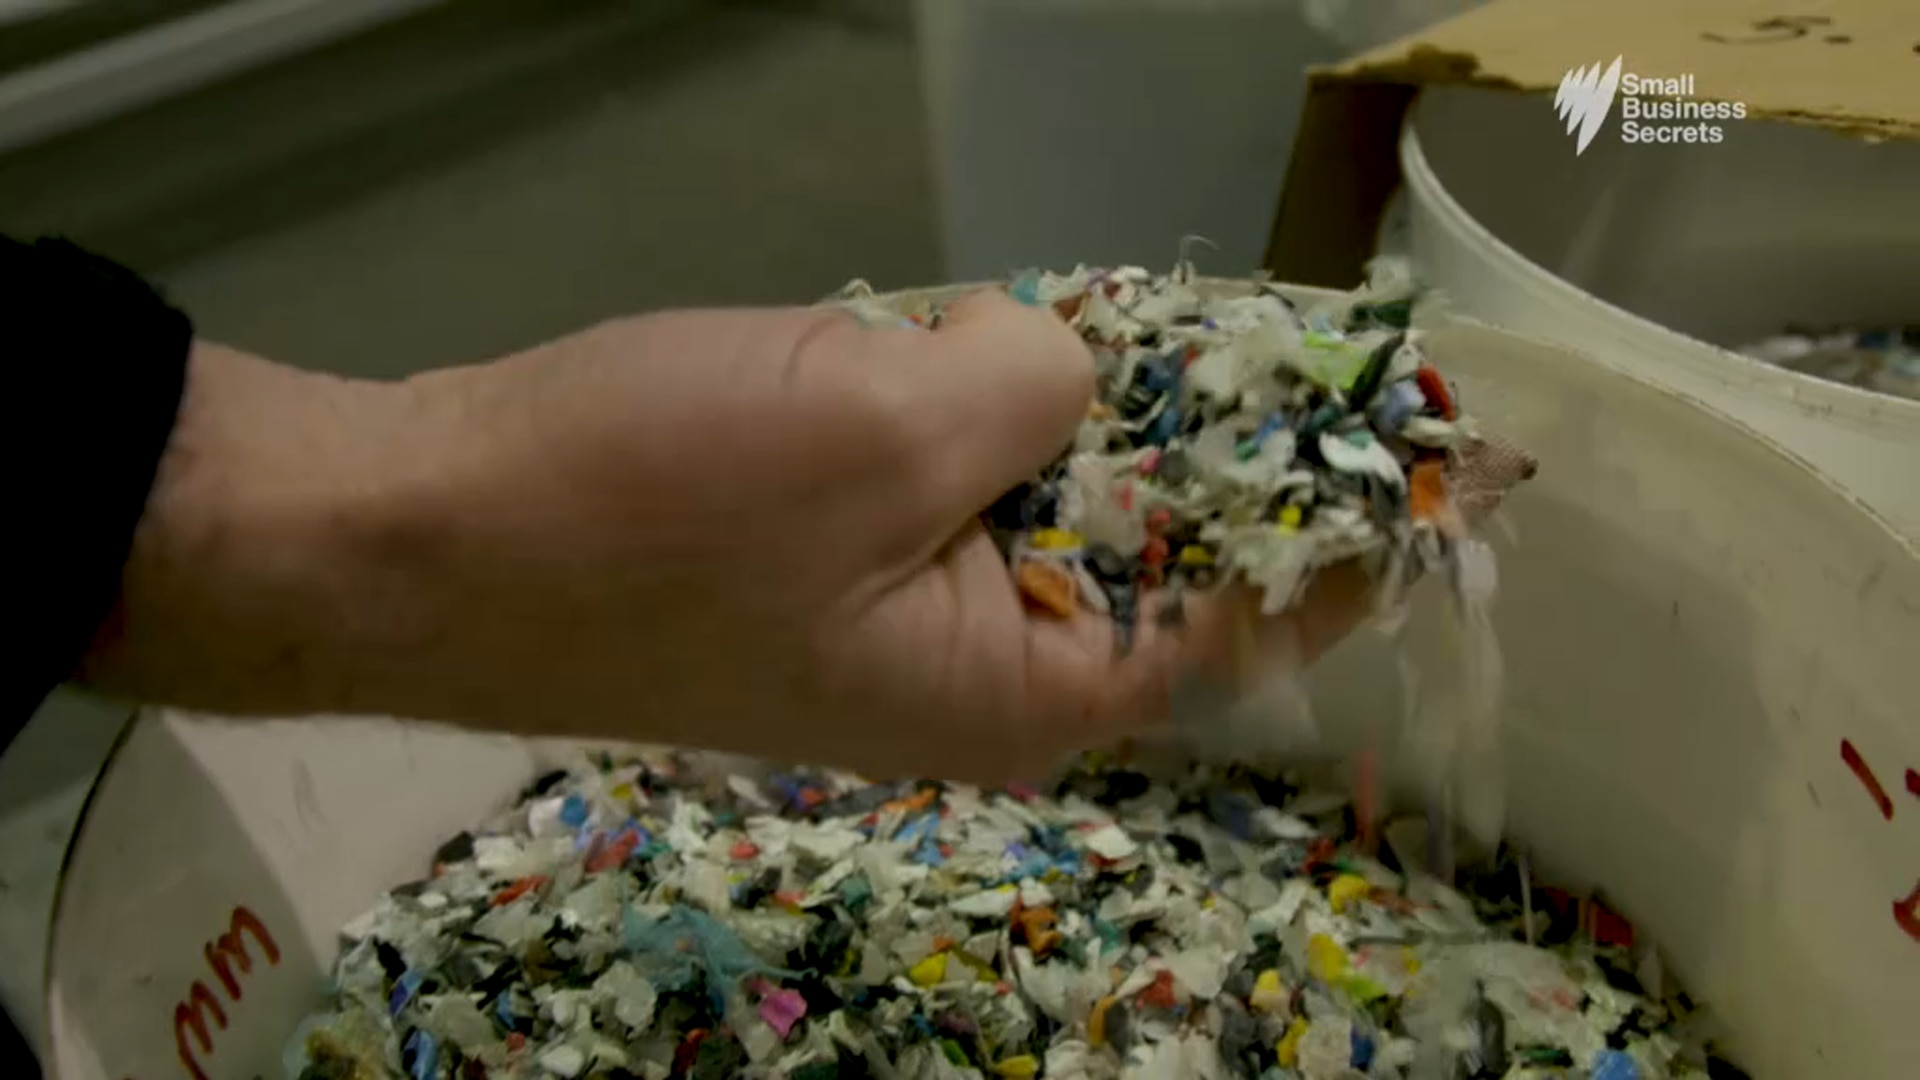 End-of-life plastic